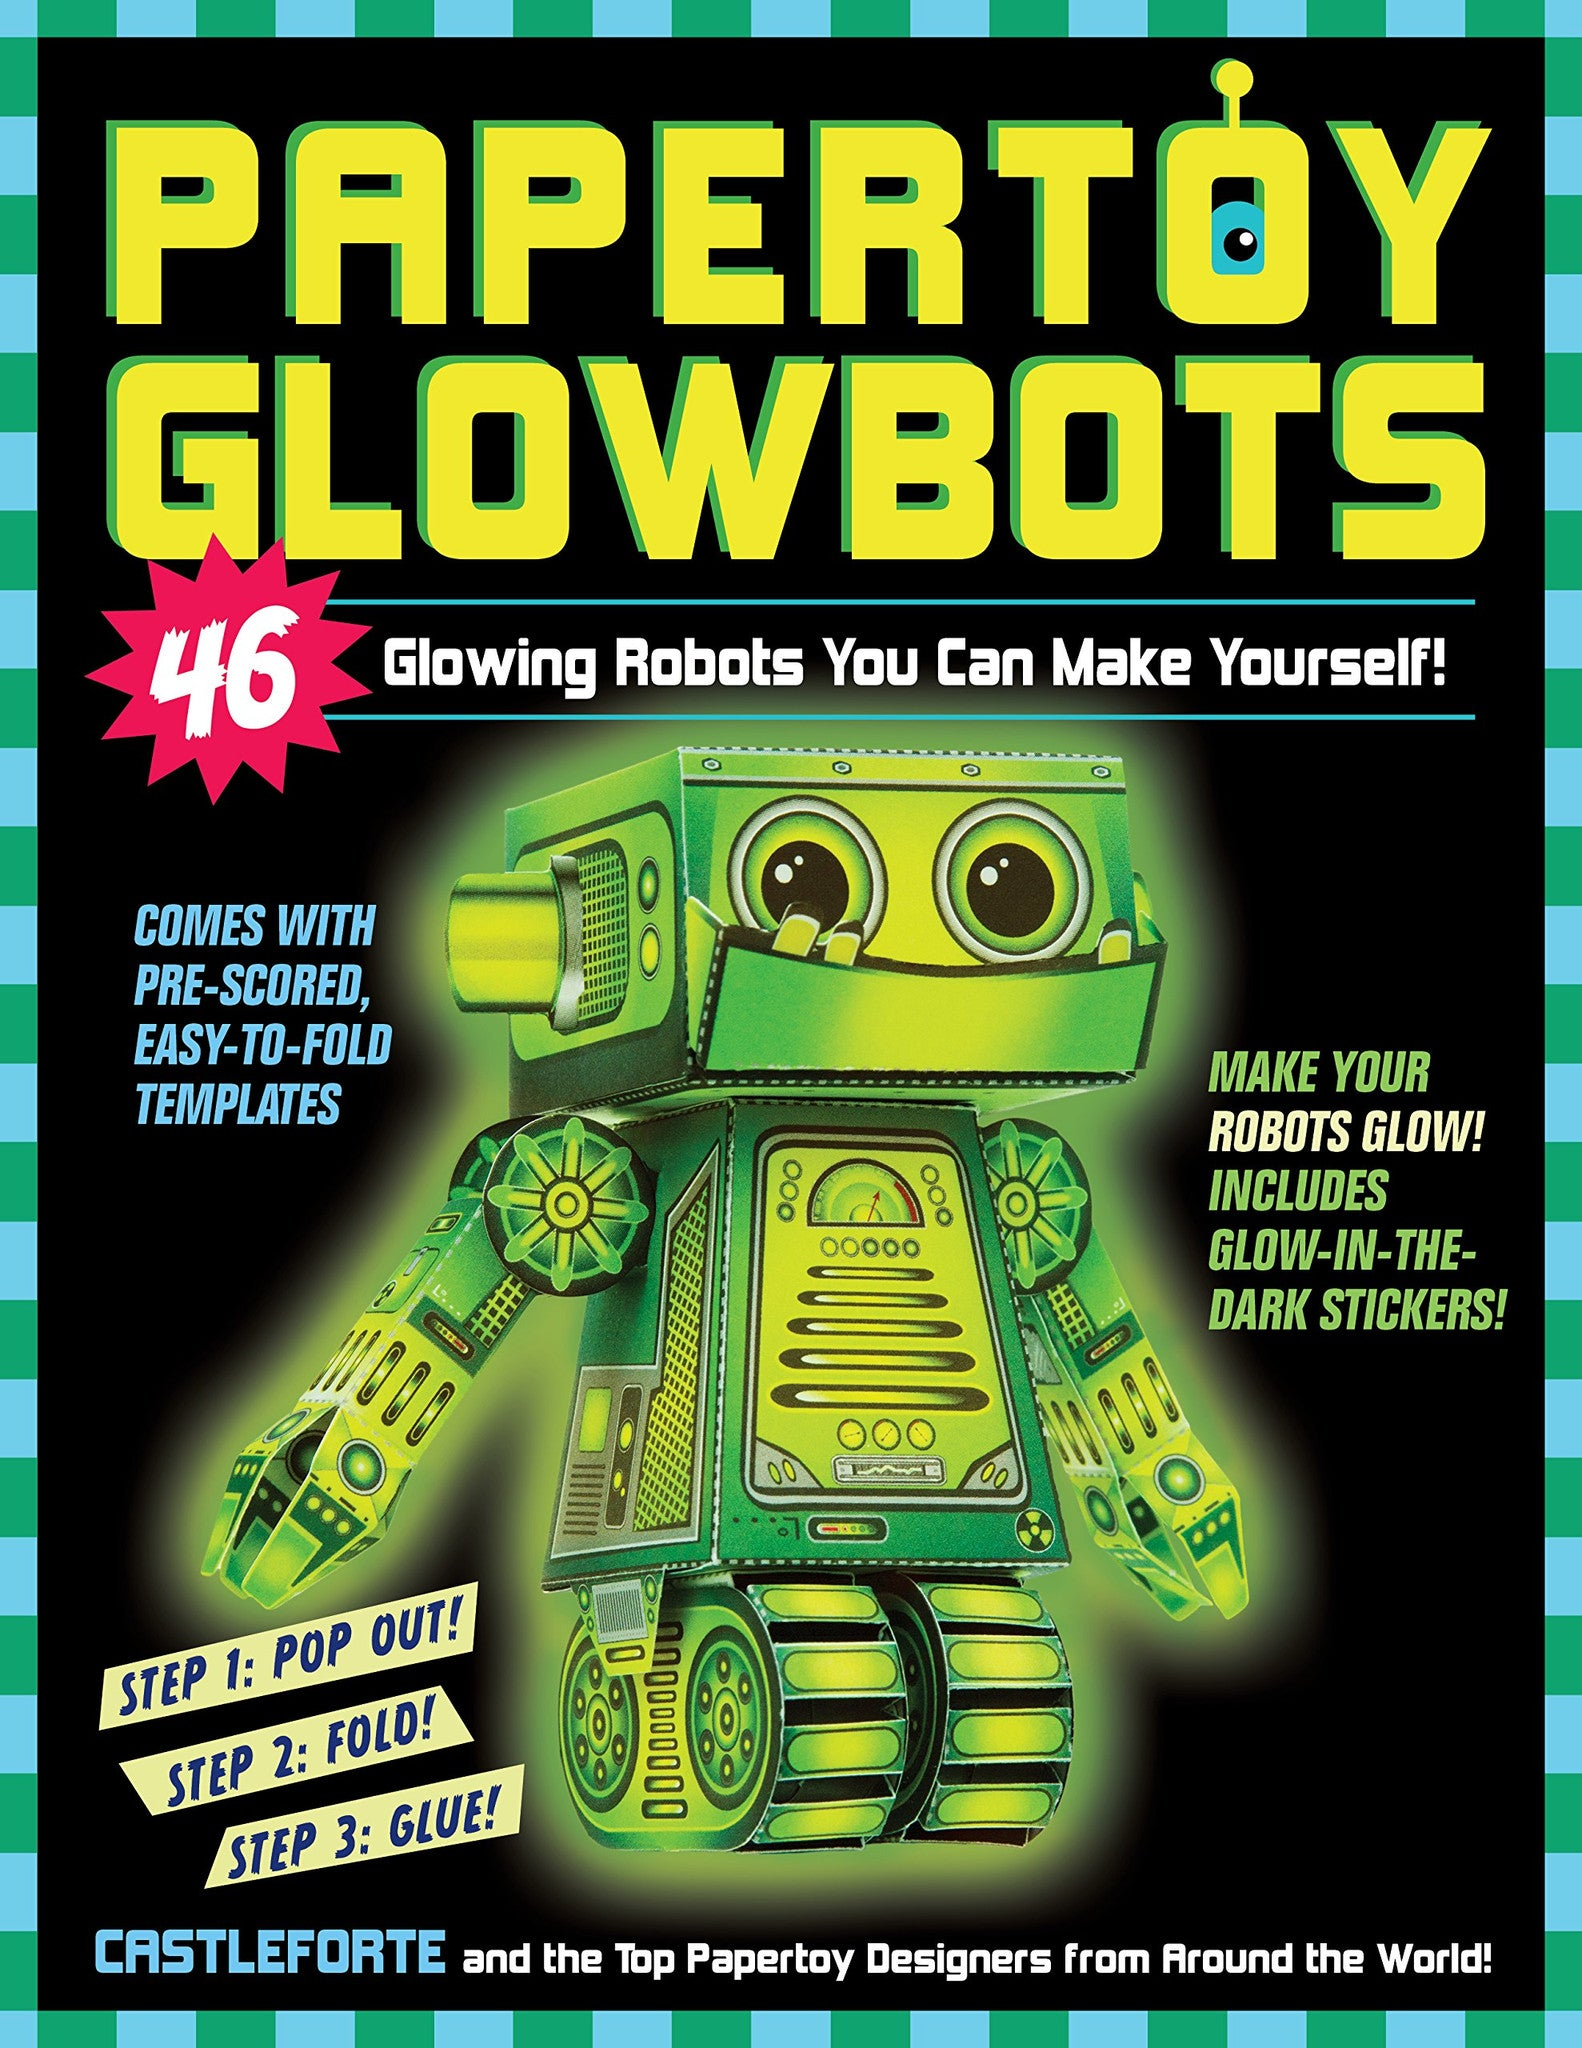 Papertoy Glowbots 46 Glowing Robots You Can Make Yourself